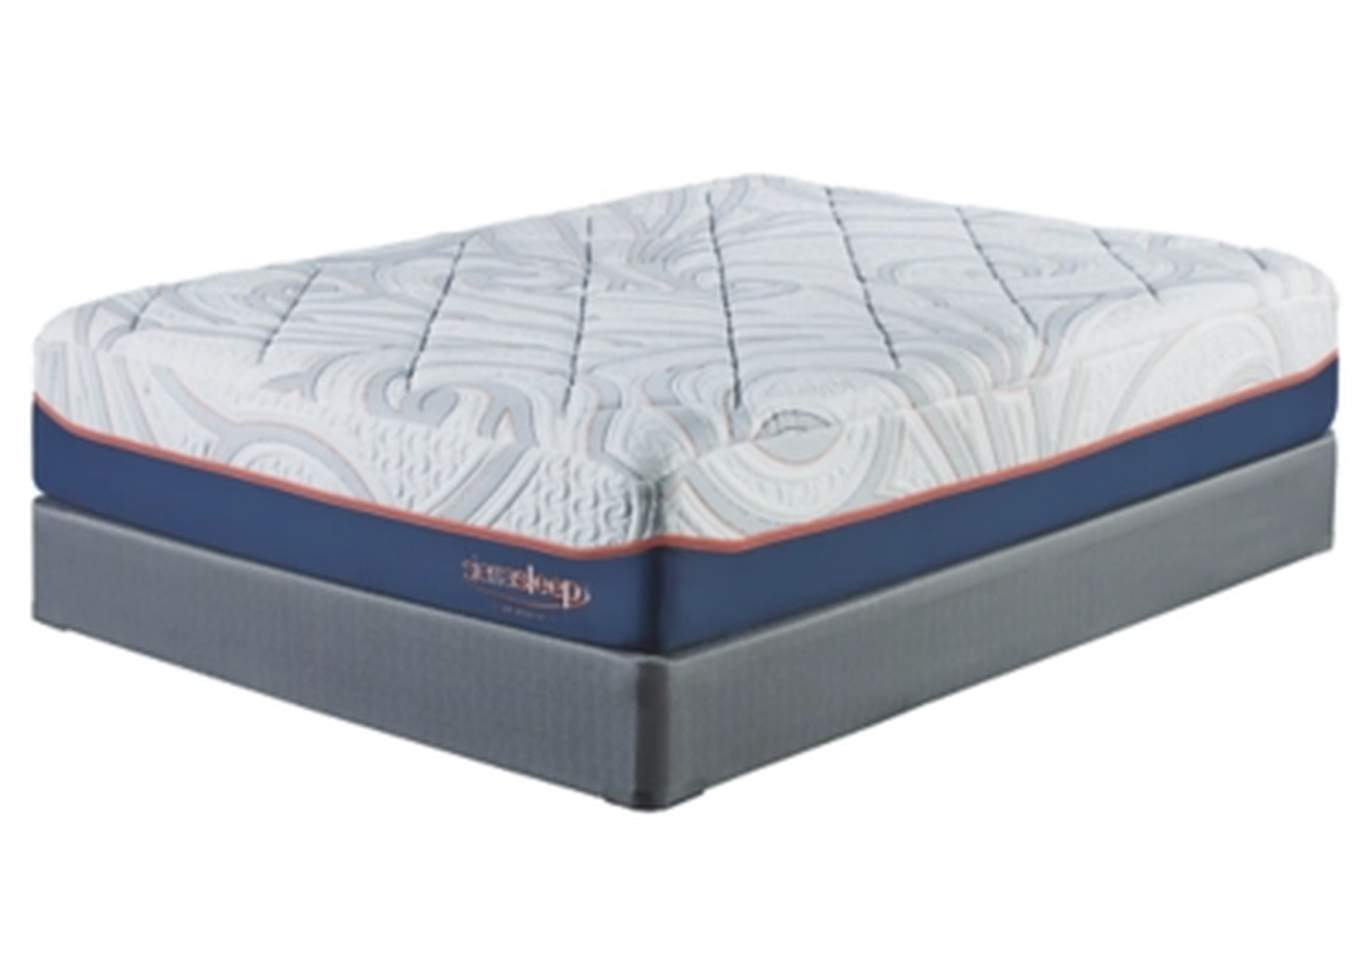 14 Inch MyGel White King Mattress w/Foundation,Sierra Sleep by Ashley